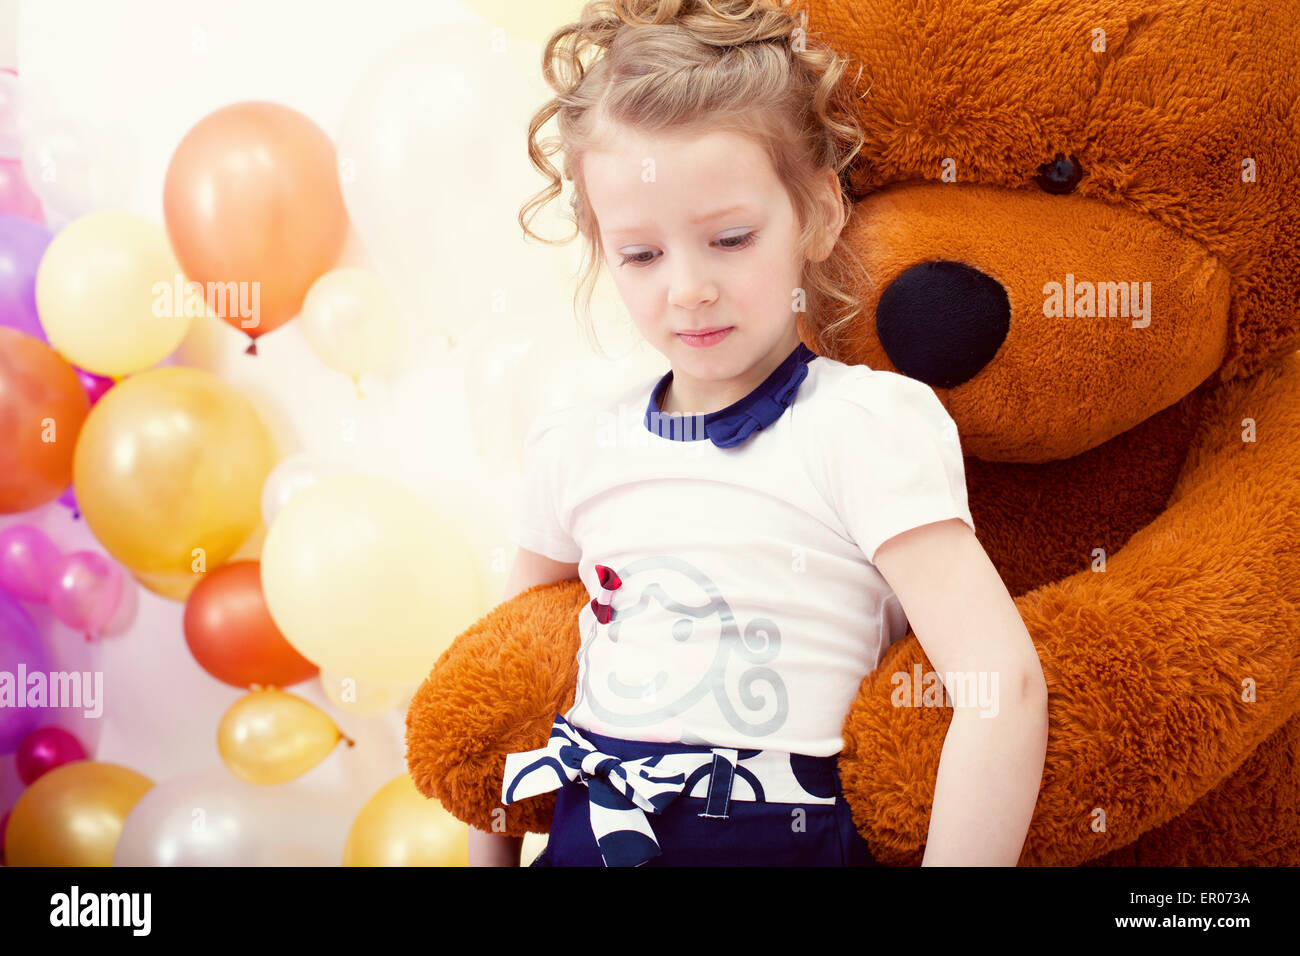 Cute girl posing in embrace with big teddy bear - Stock Image